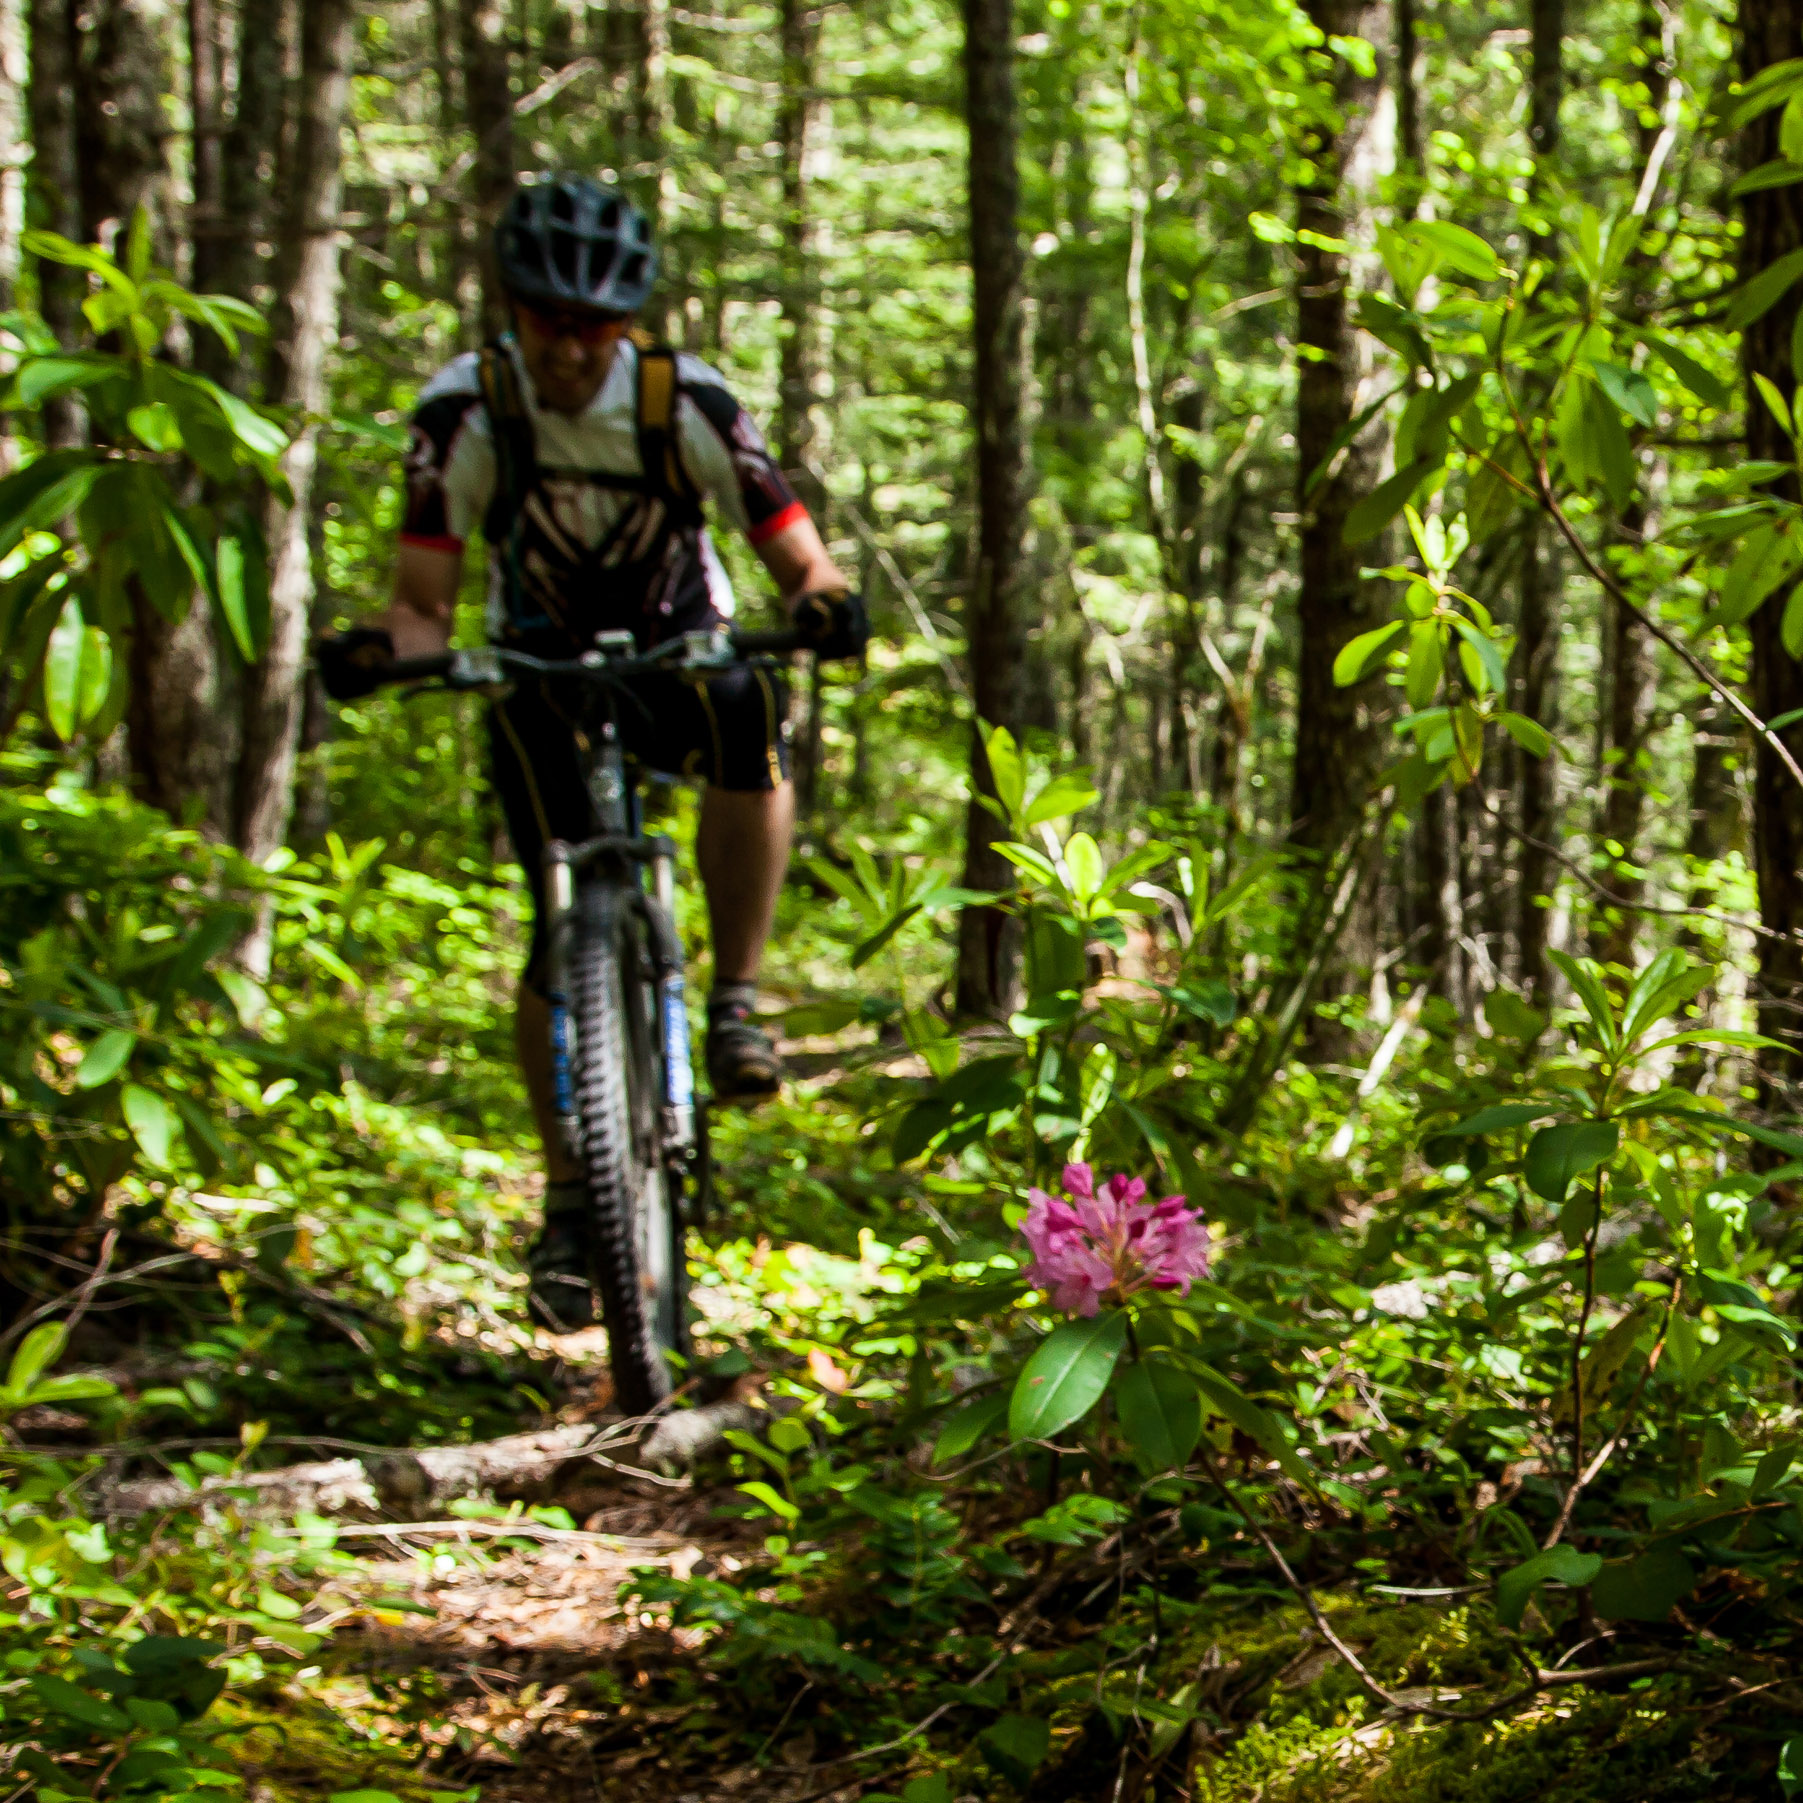 Office of Outdoor Recreation - PASSED